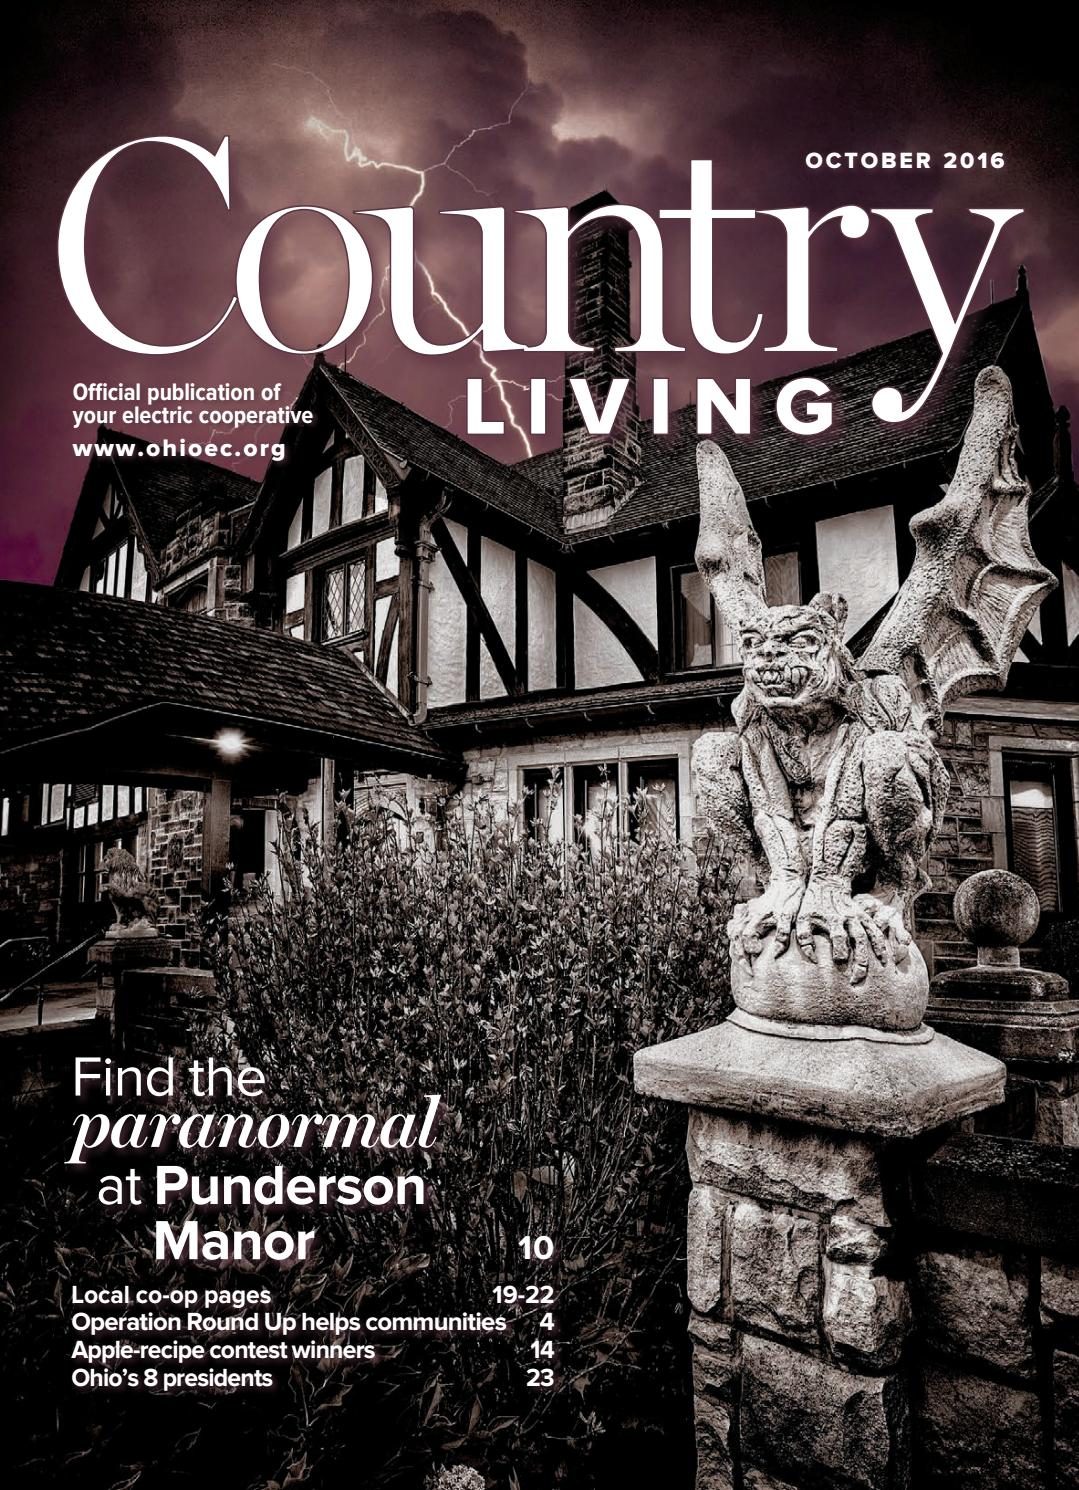 Country Living October 2016 Consolidated By American